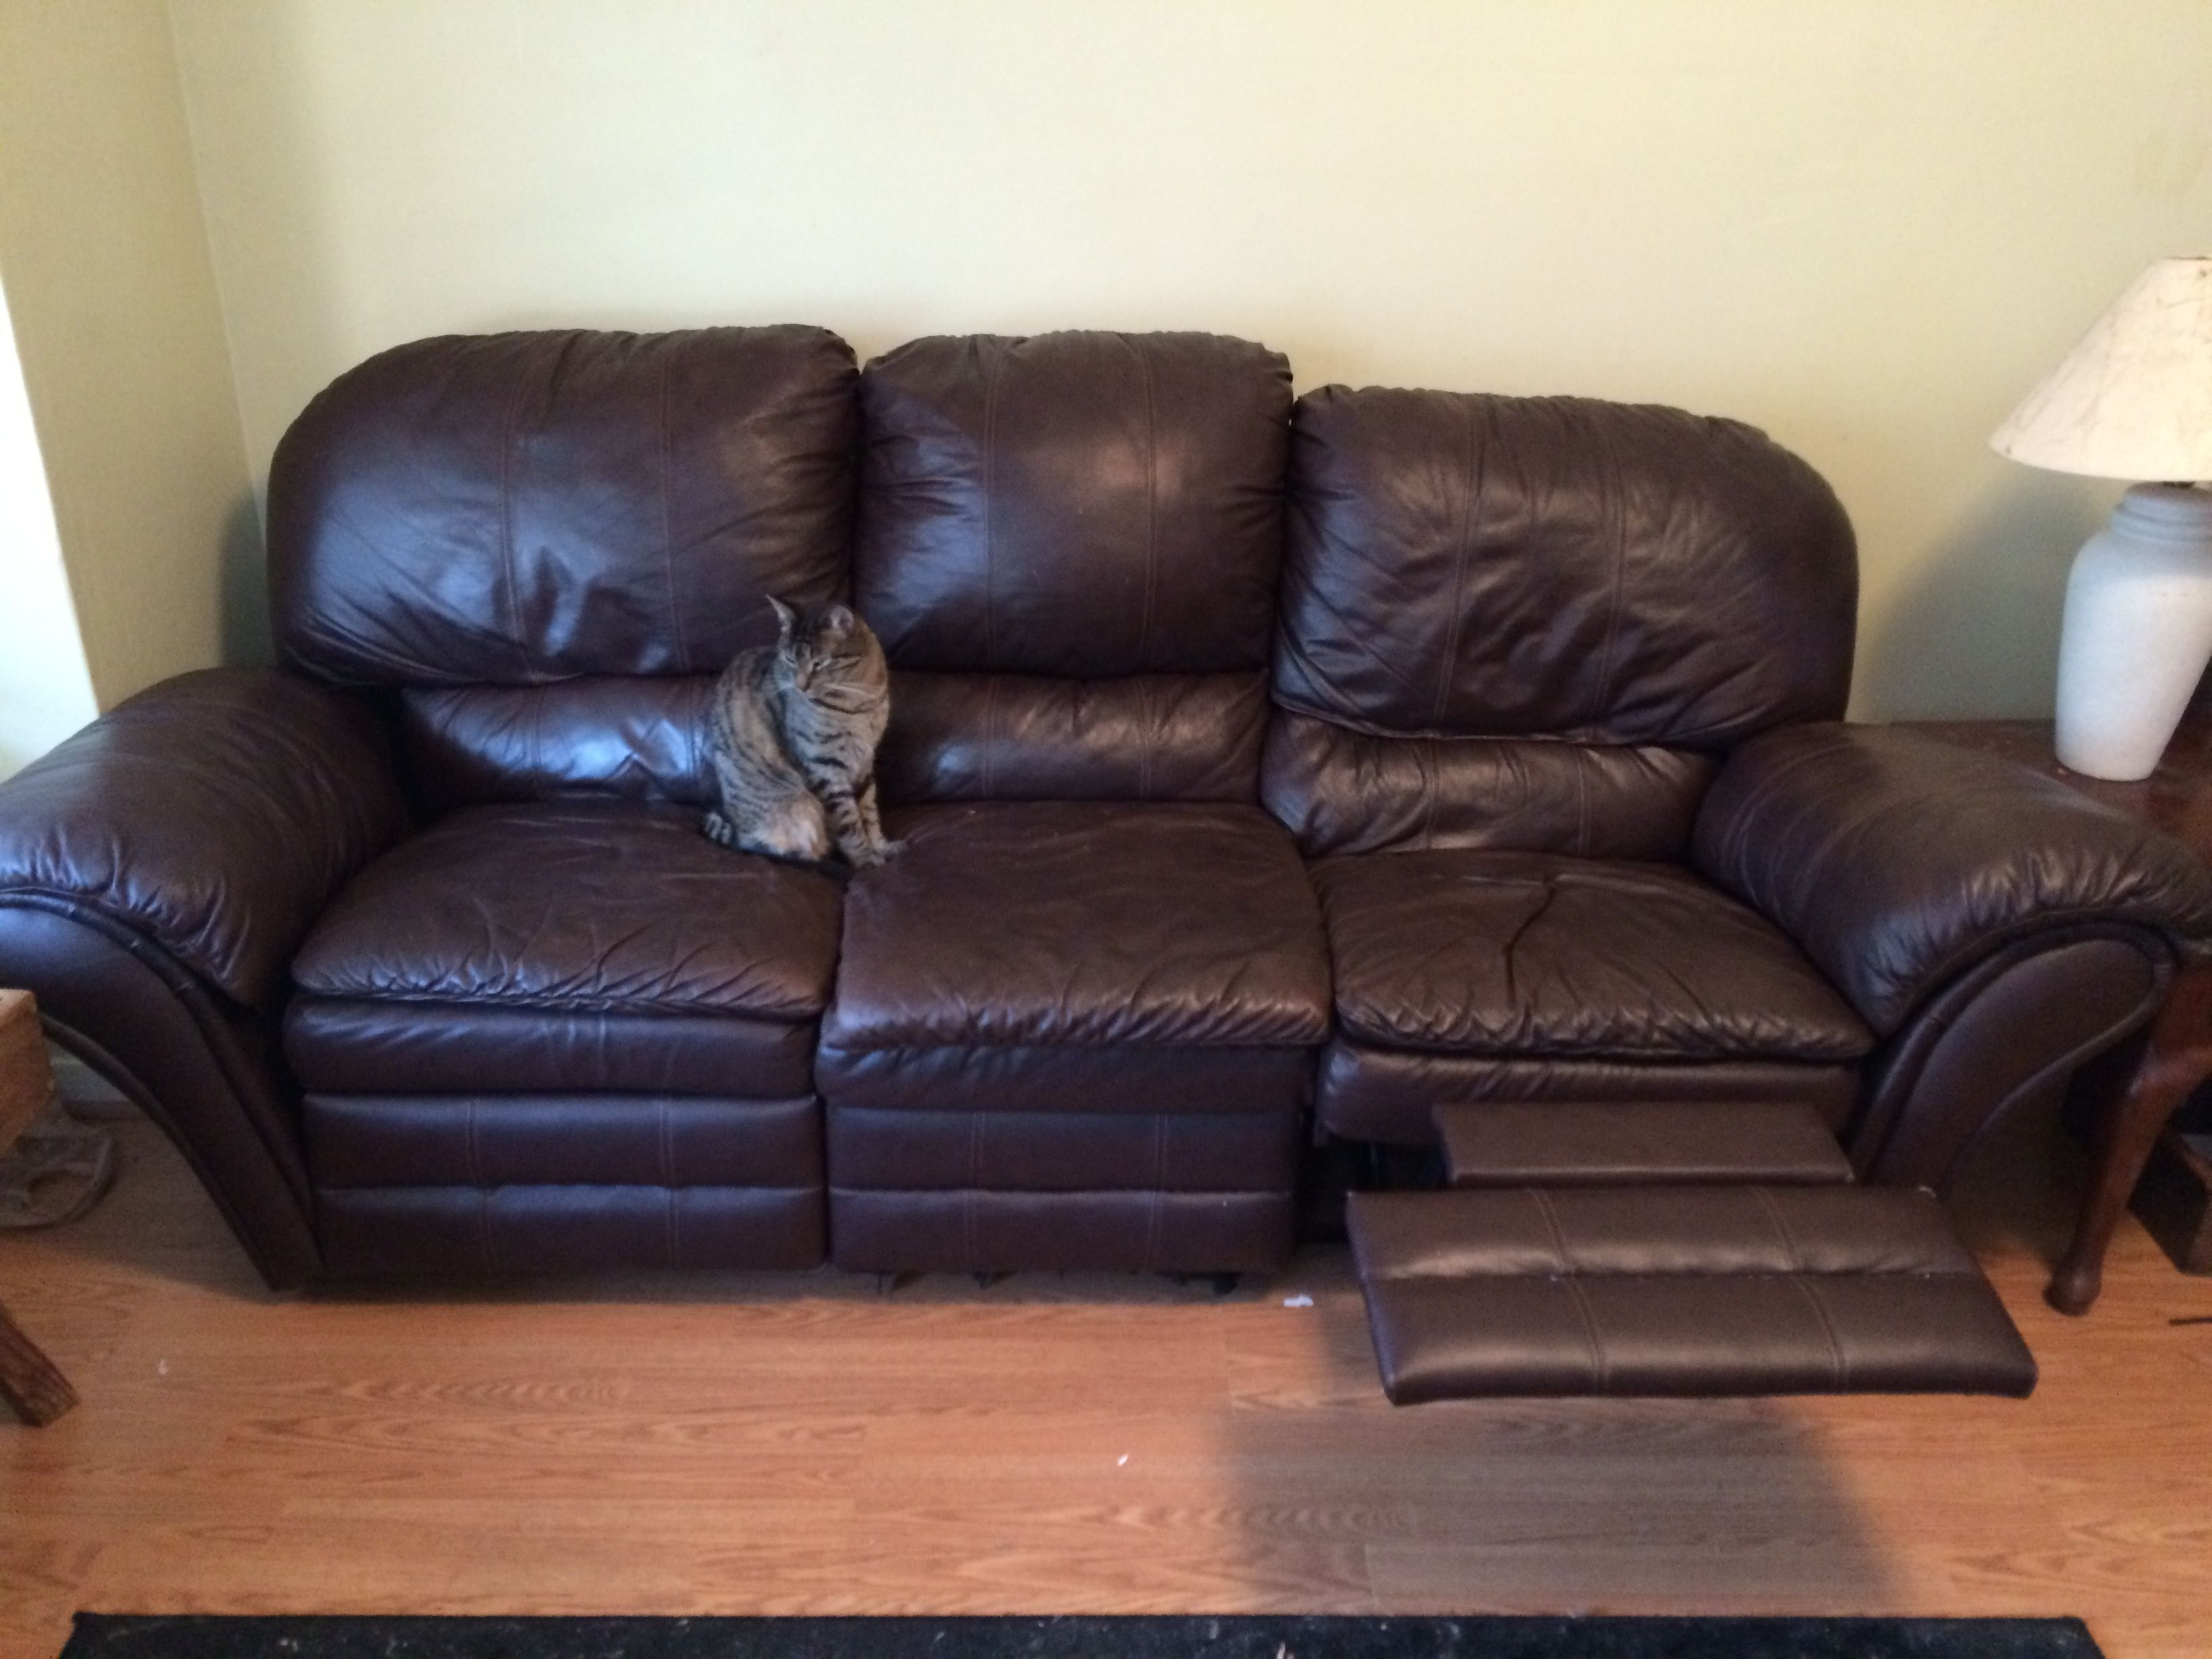 Leather Couch Craigslist Bedroom Sets For Sale Buy Couch